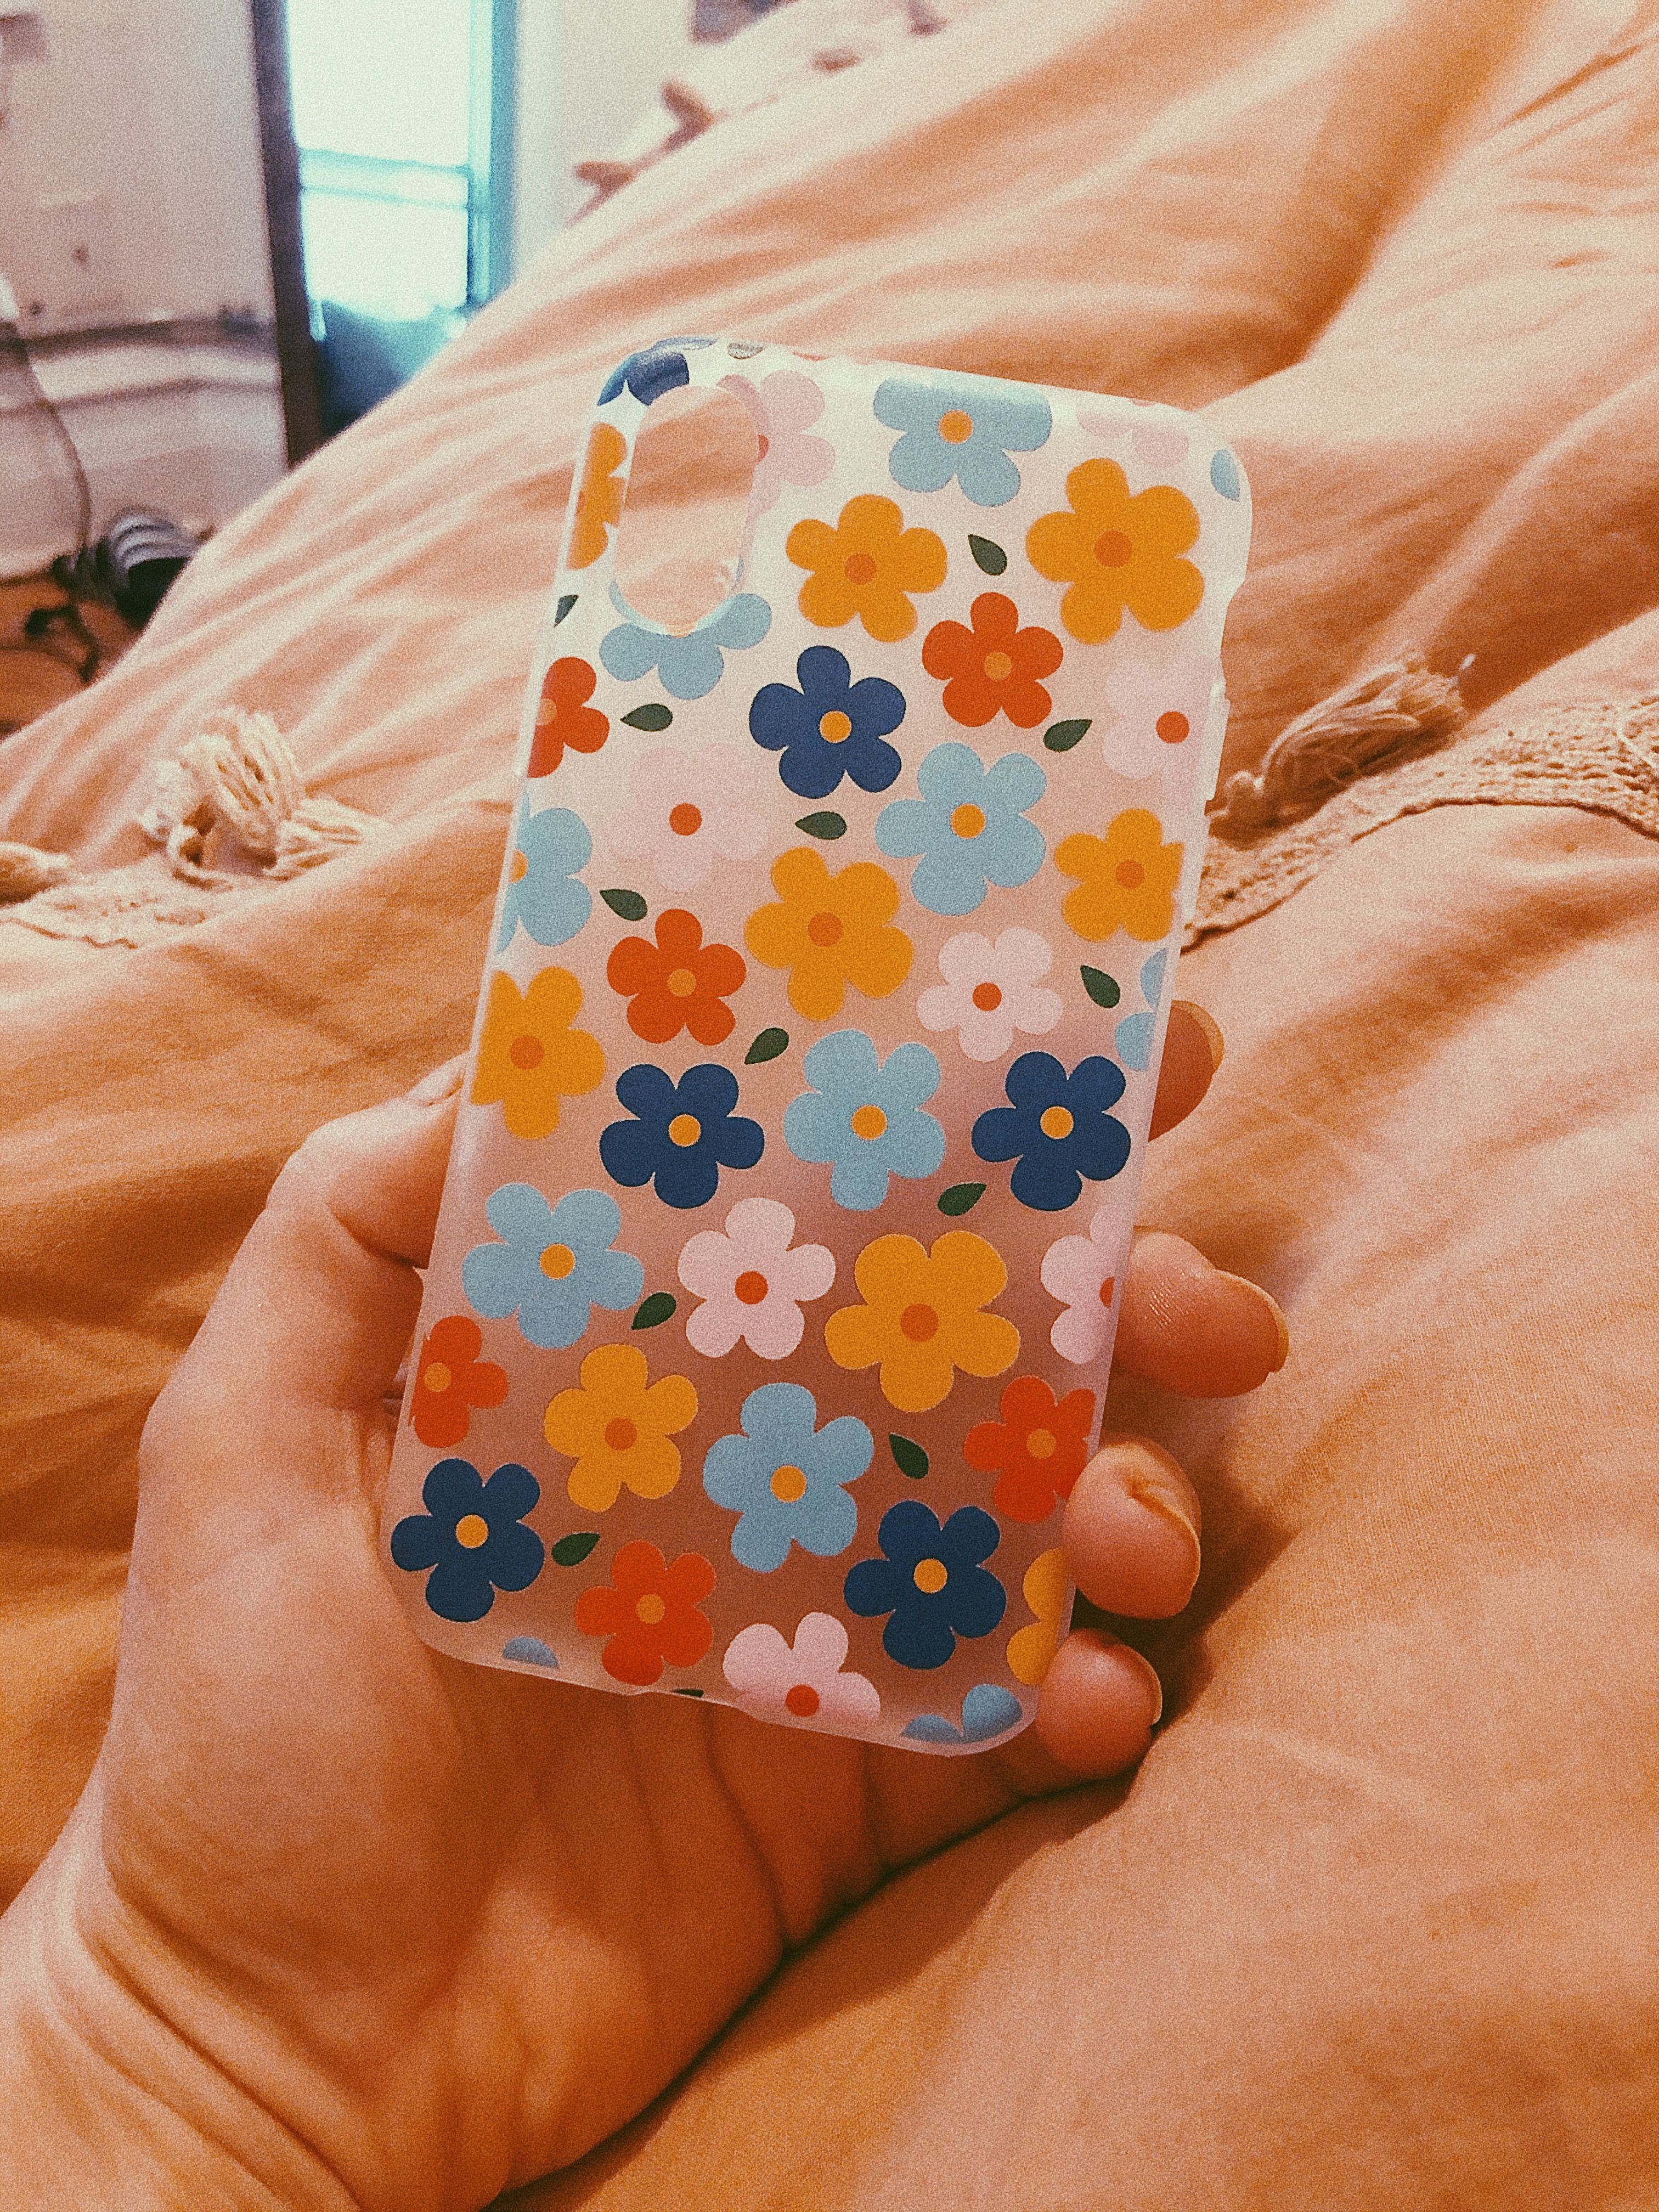 Daisy Clear Phone Case (With images) | Clear phone case ...